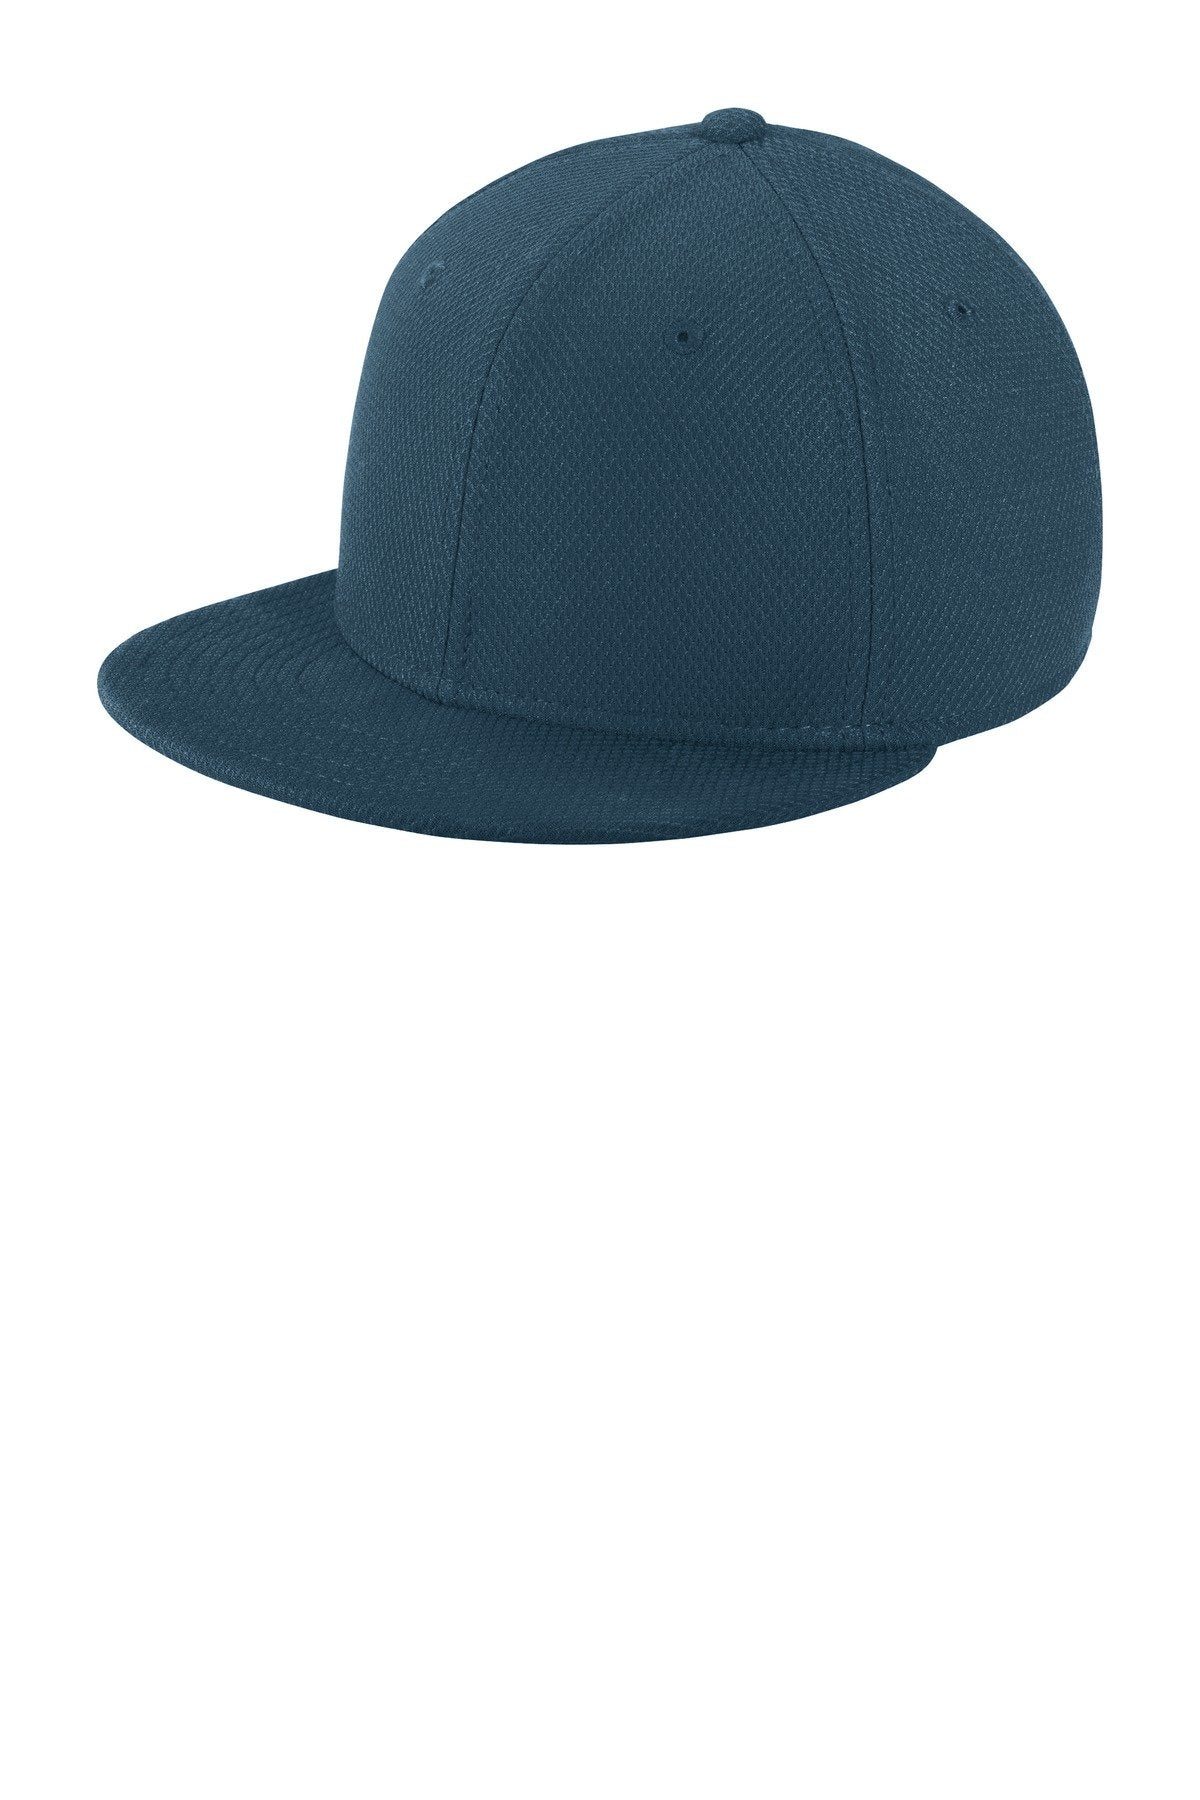 Deep Navy - New Era NE304